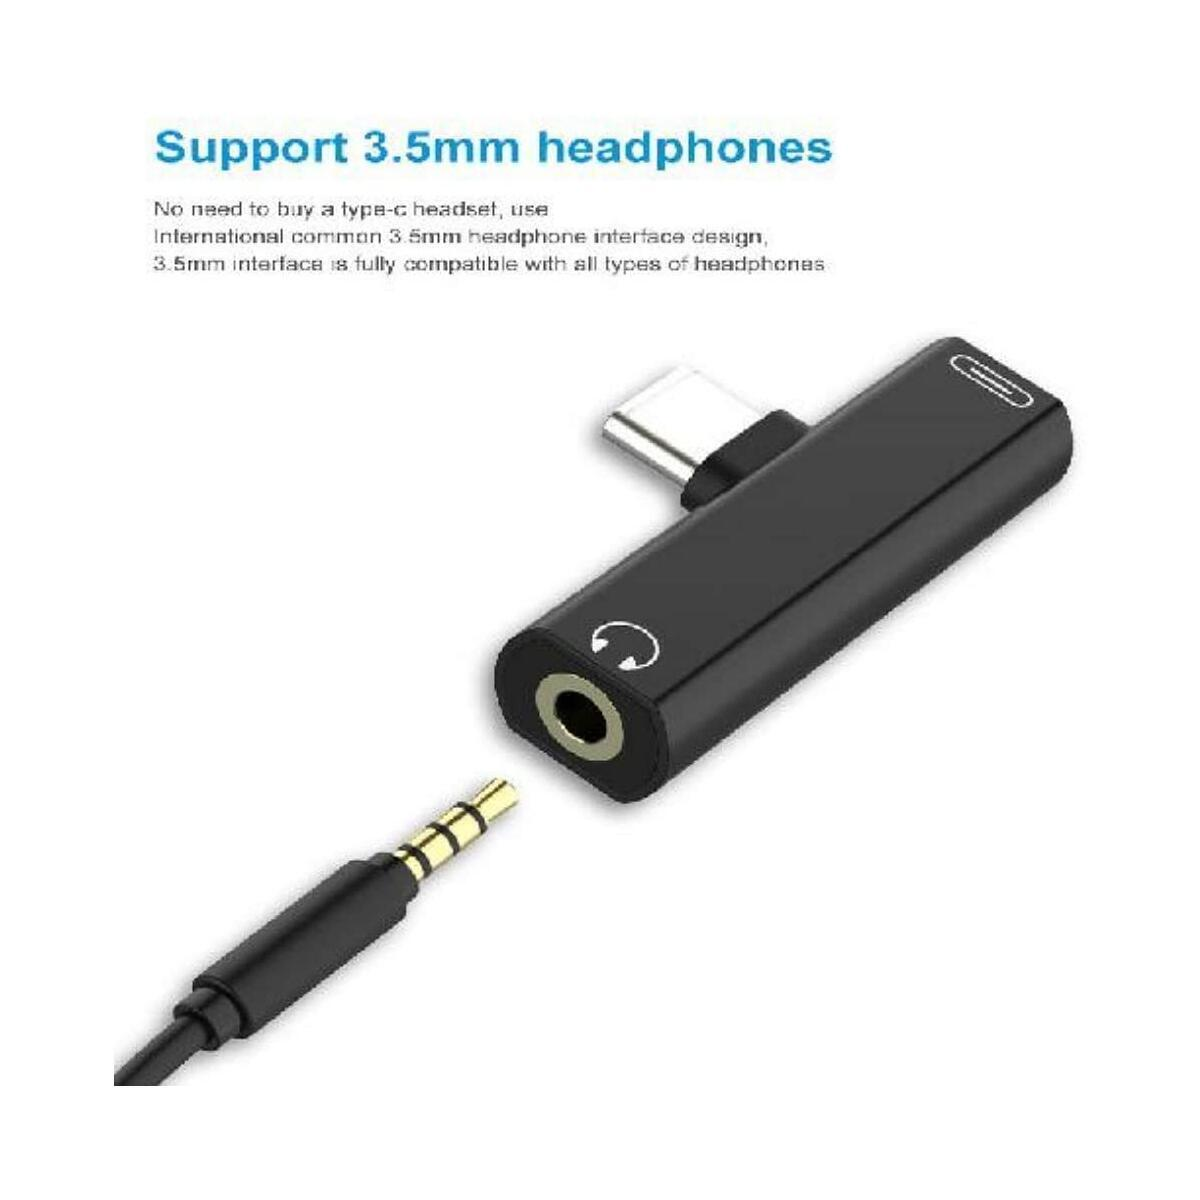 Adapter 2 in 1 USB Type C to 3.5mm Audio Splitter Jack Earphone Headphone Cable USB-C Charging for Samsung, Huawei, Xiaomi, LG, Google, HTC, BlackBerry and Tablet Adaptor (Black)